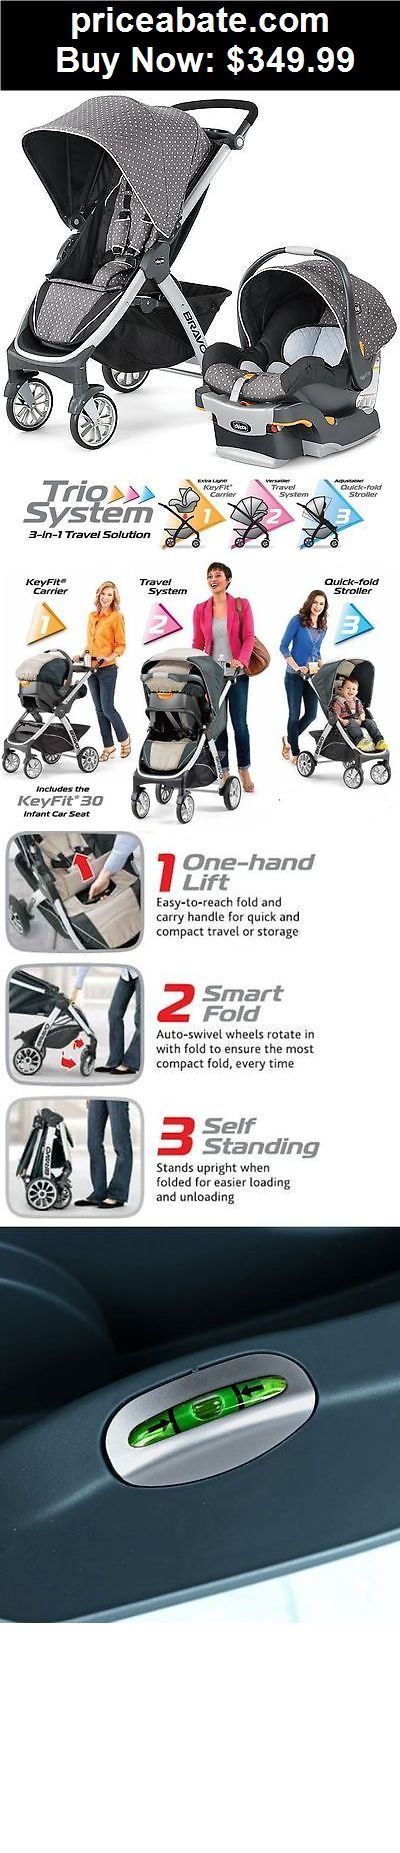 Baby: Chicco Bravo Trio 3-in-1 Baby Travel System Stroller w/ KeyFit 30 Lilla NEW – BUY IT NOW ONLY $349.99